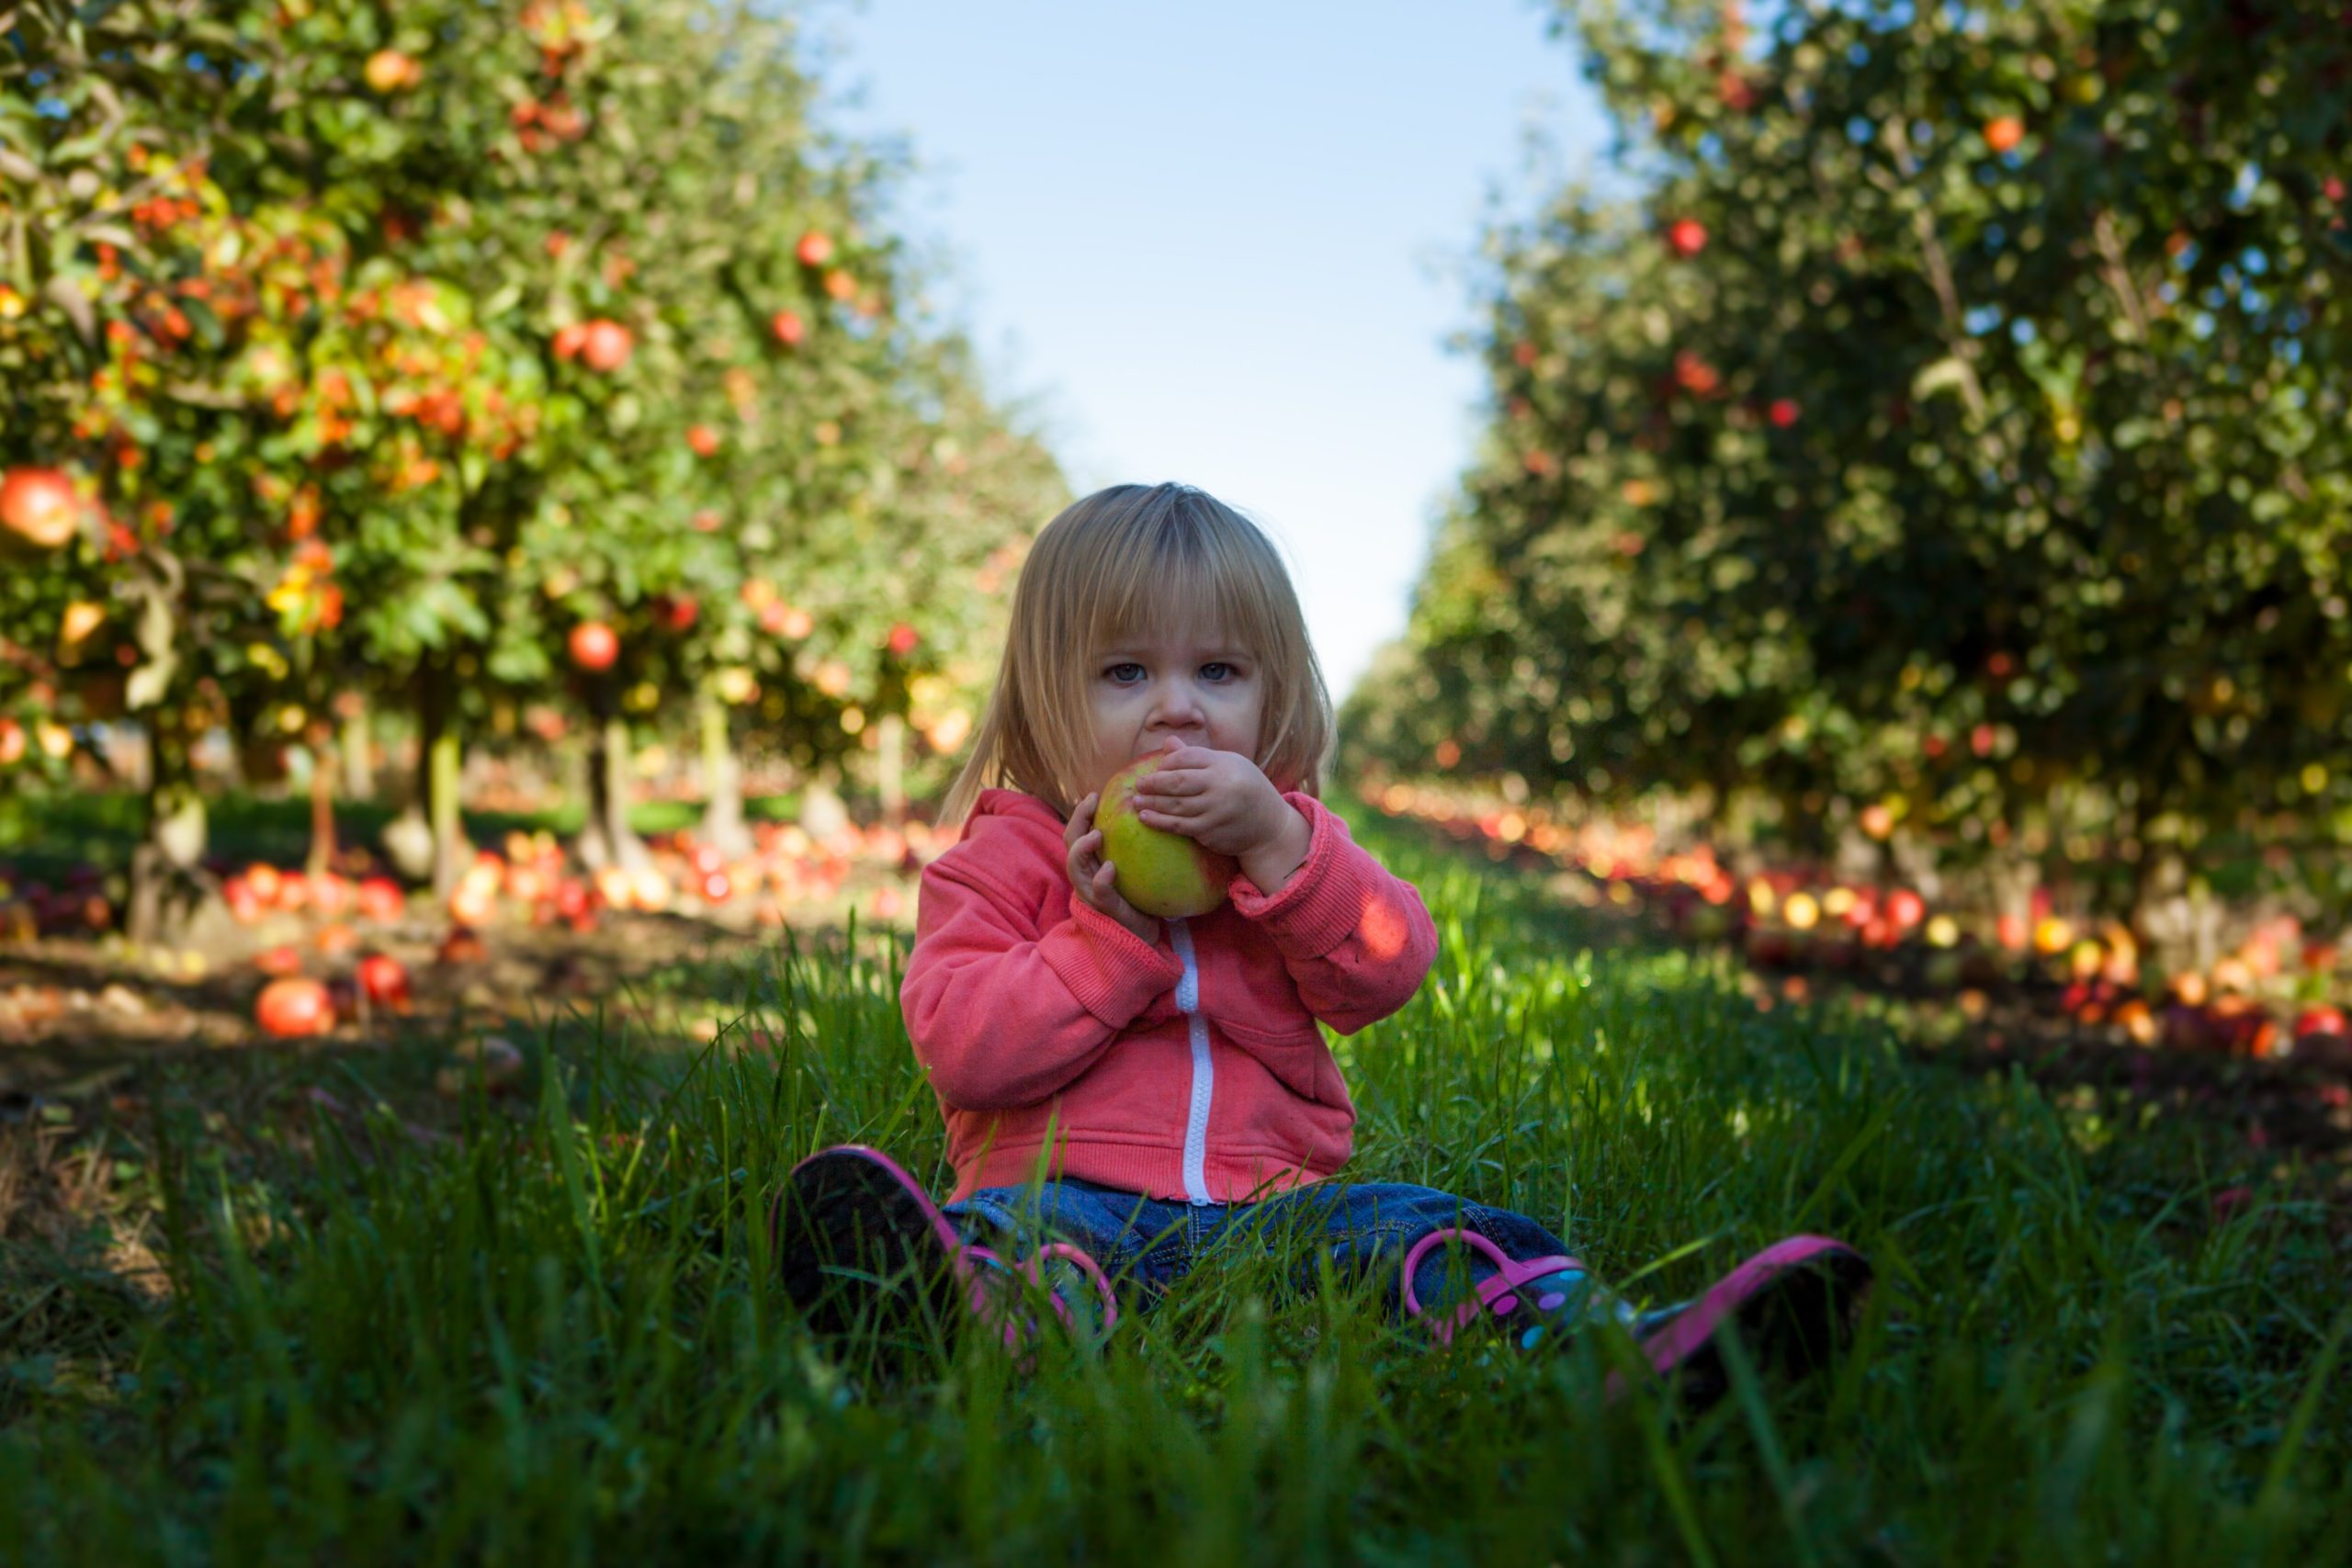 little girl in a pink jacket and blue pants sitting in an apple orchard eating a fresh apple with rows of trees on either side of her